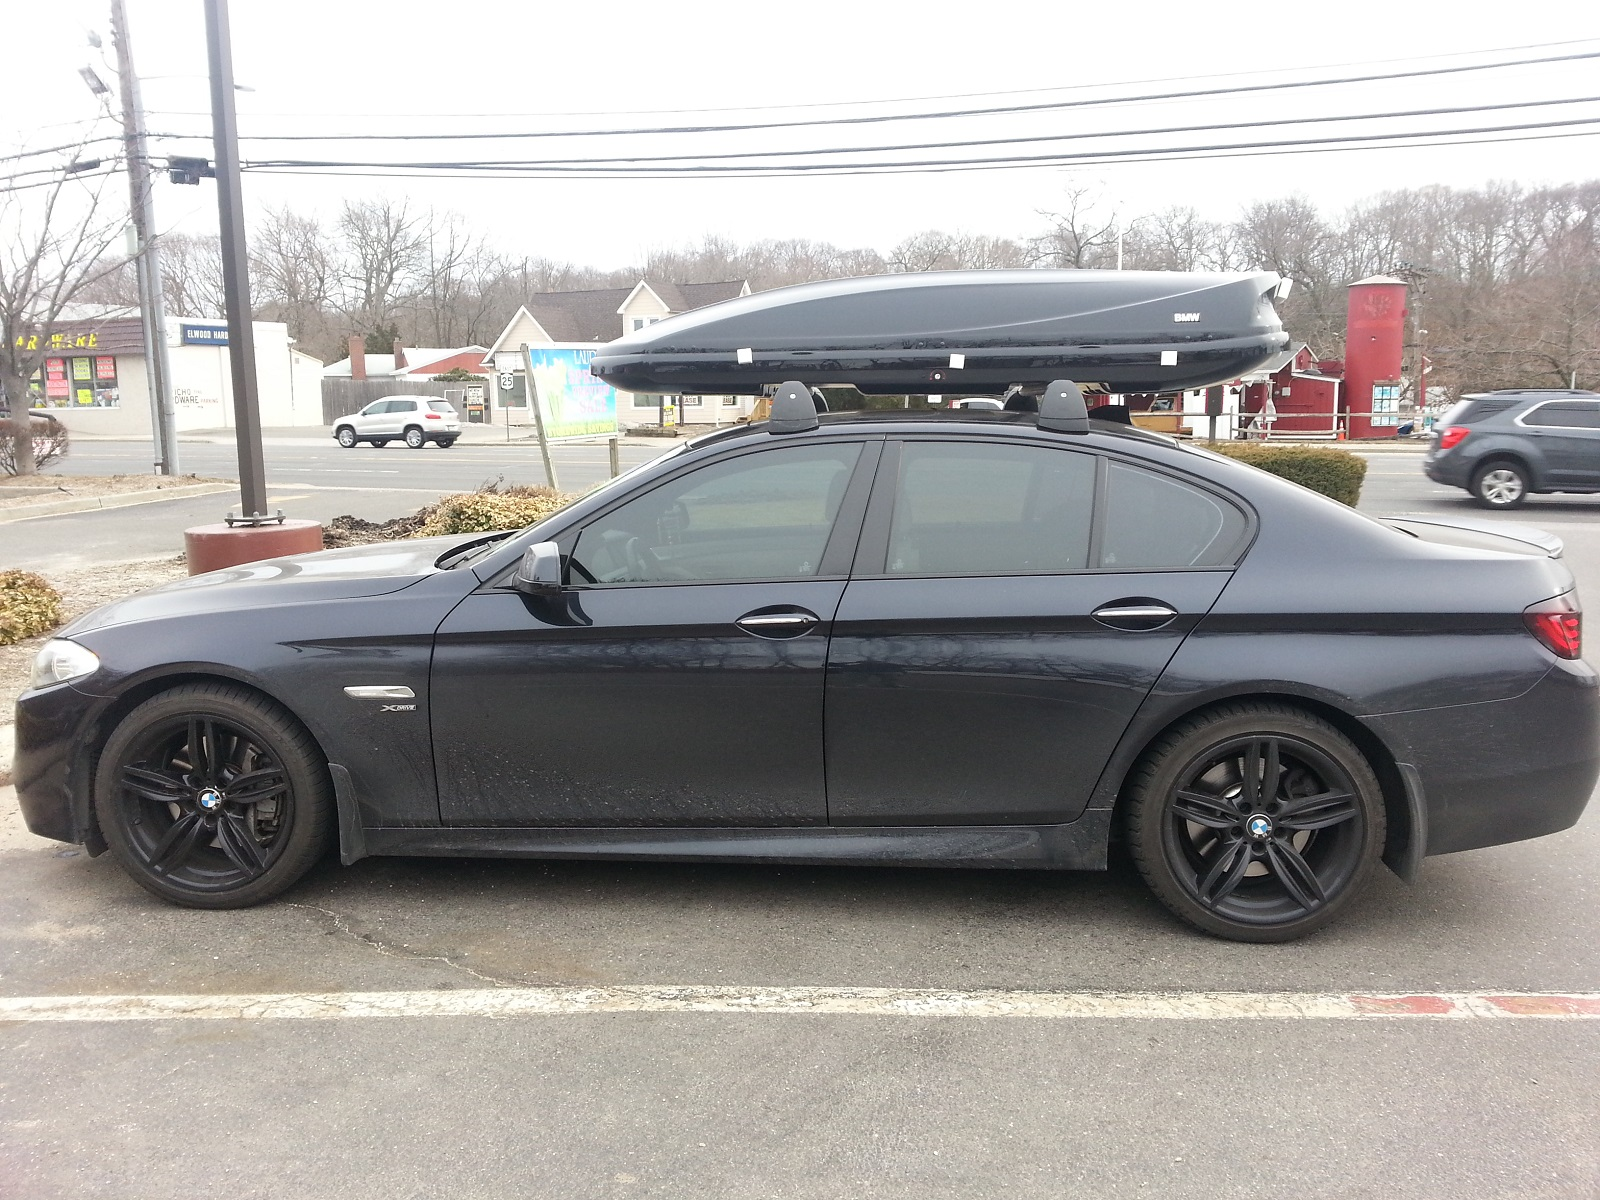 New Bmw Roof Box 460